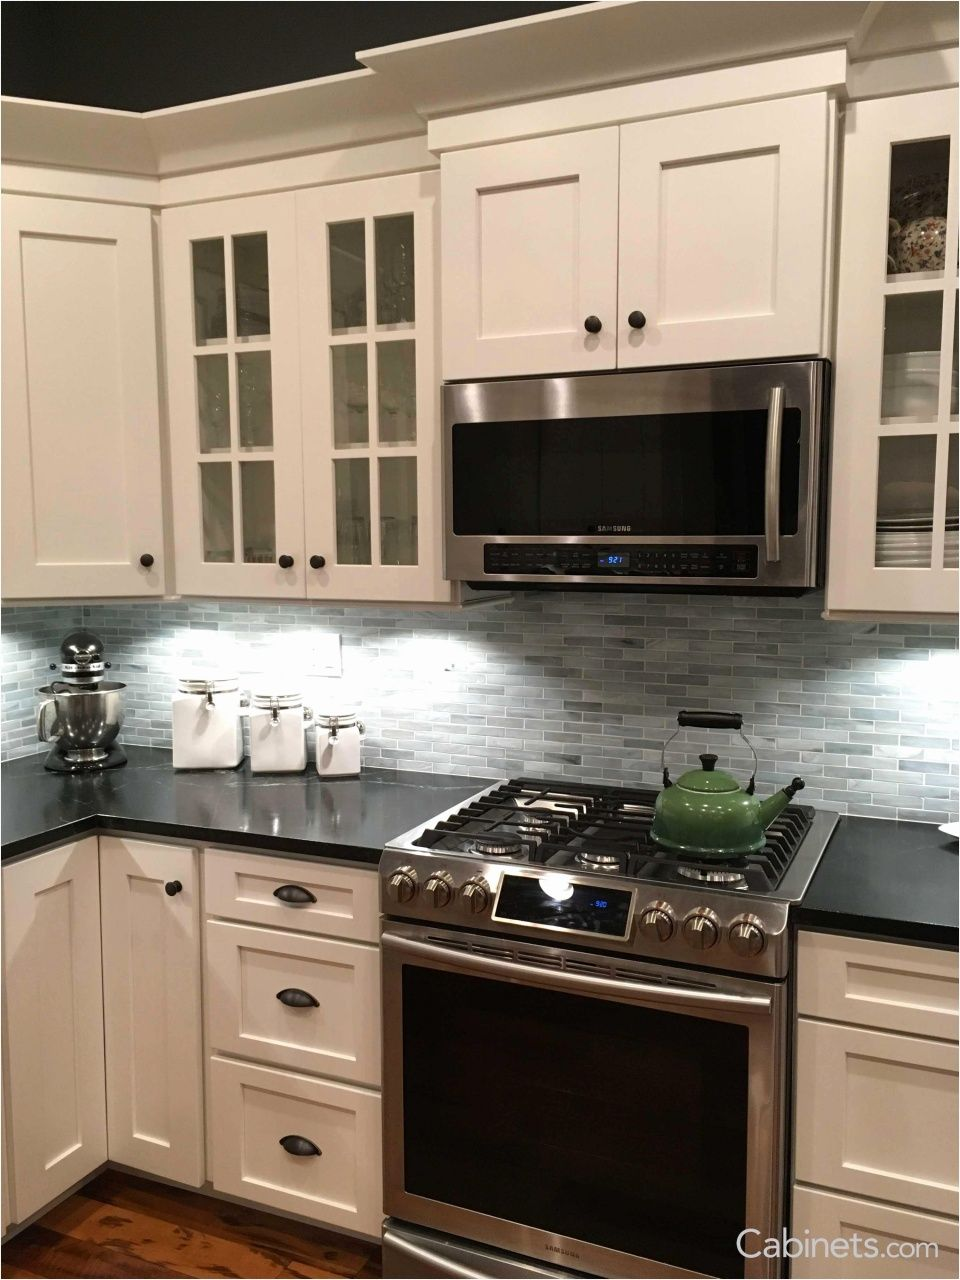 Used Kitchen Cabinets For Sale Near Me In 2020 Kitchen Cabinet Styles Shaker Style Kitchen Cabinets Kitchen Renovation